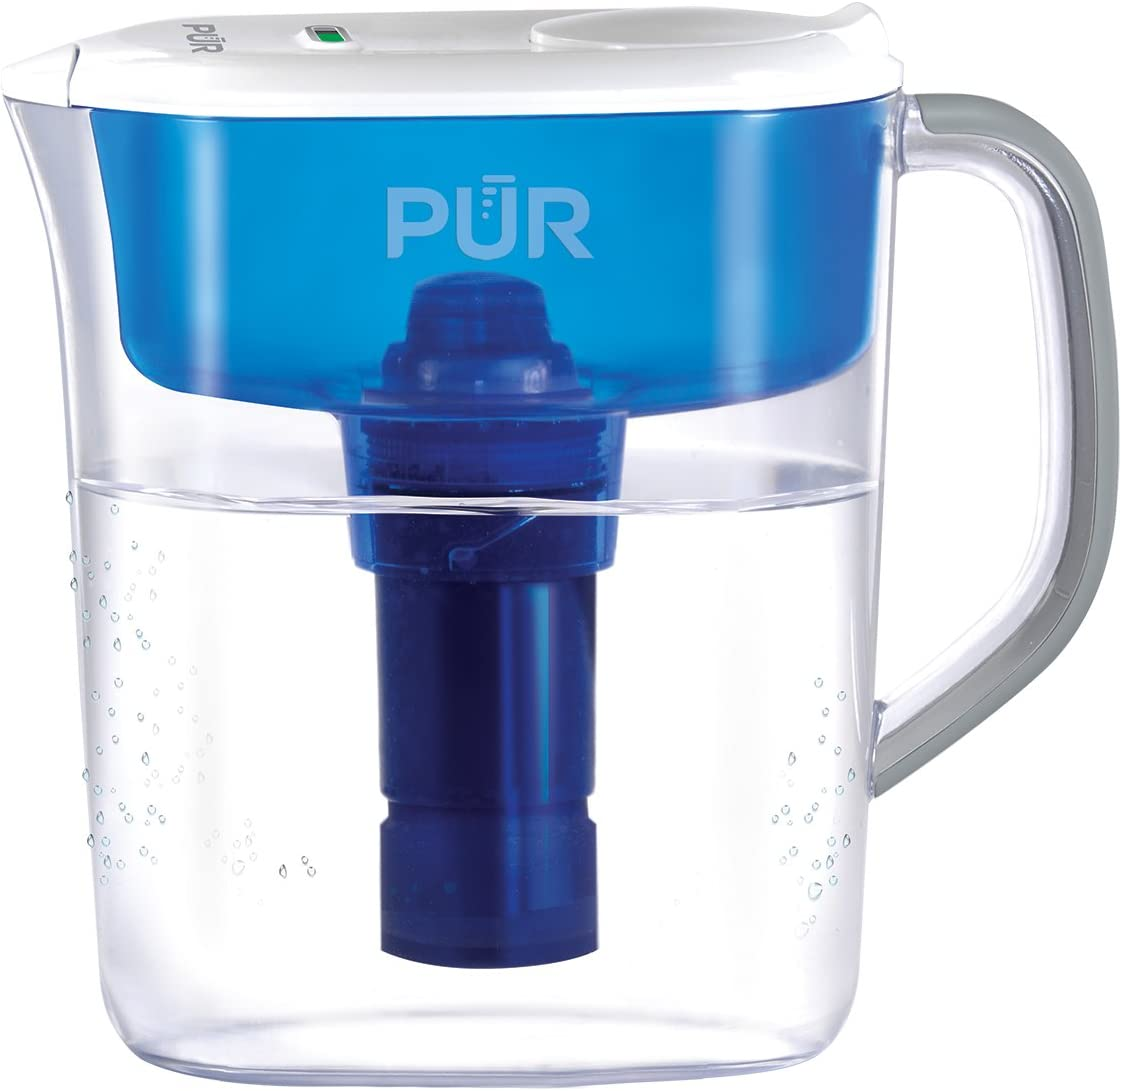 PUR 11-Cup Ultimate Water Filtration Pitcher with LED